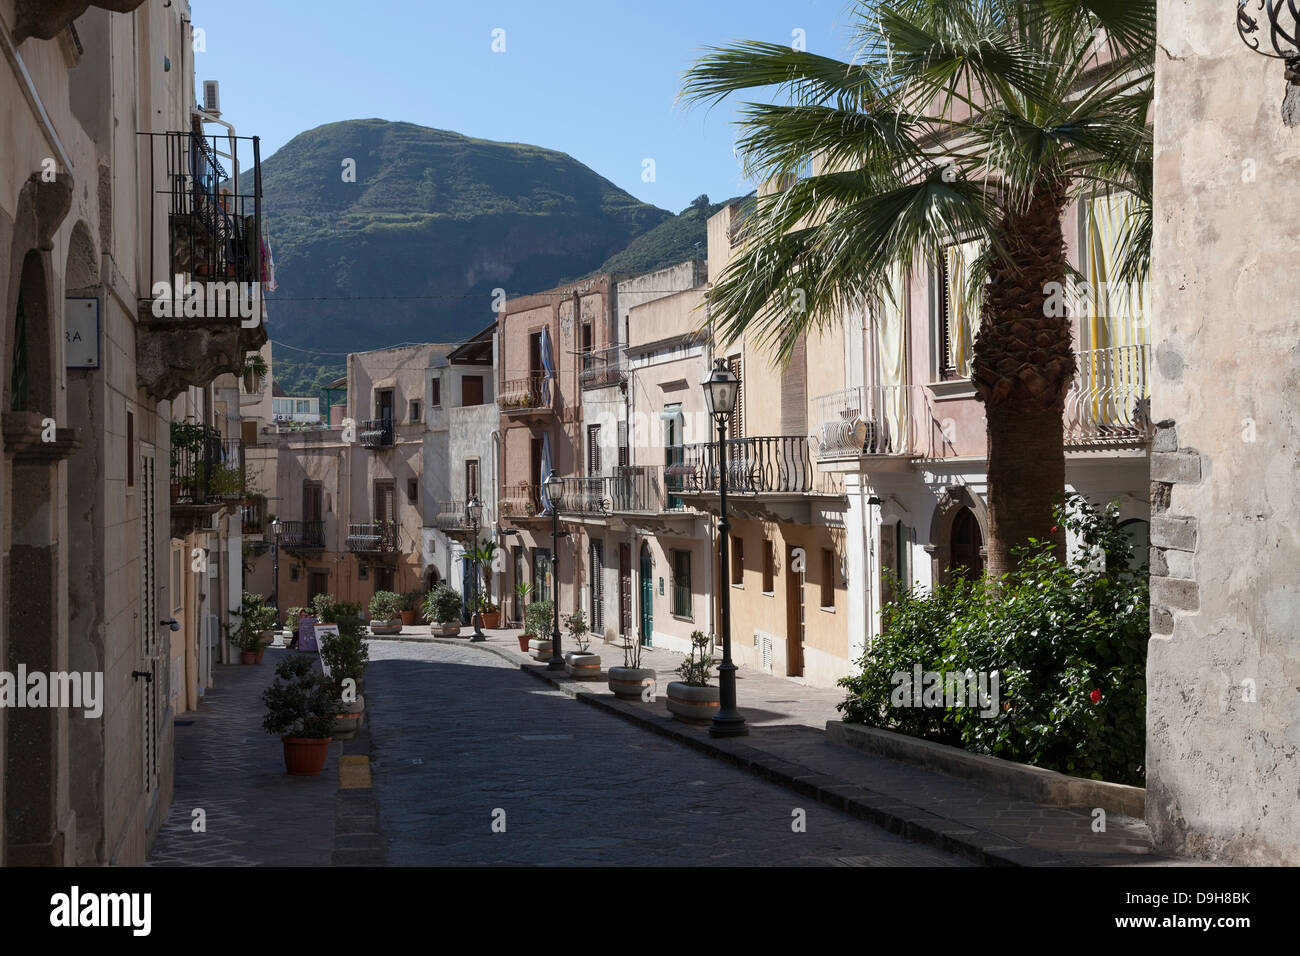 Streets and Alleys of Lipari, Aeolian Islands, Italy - Stock Image